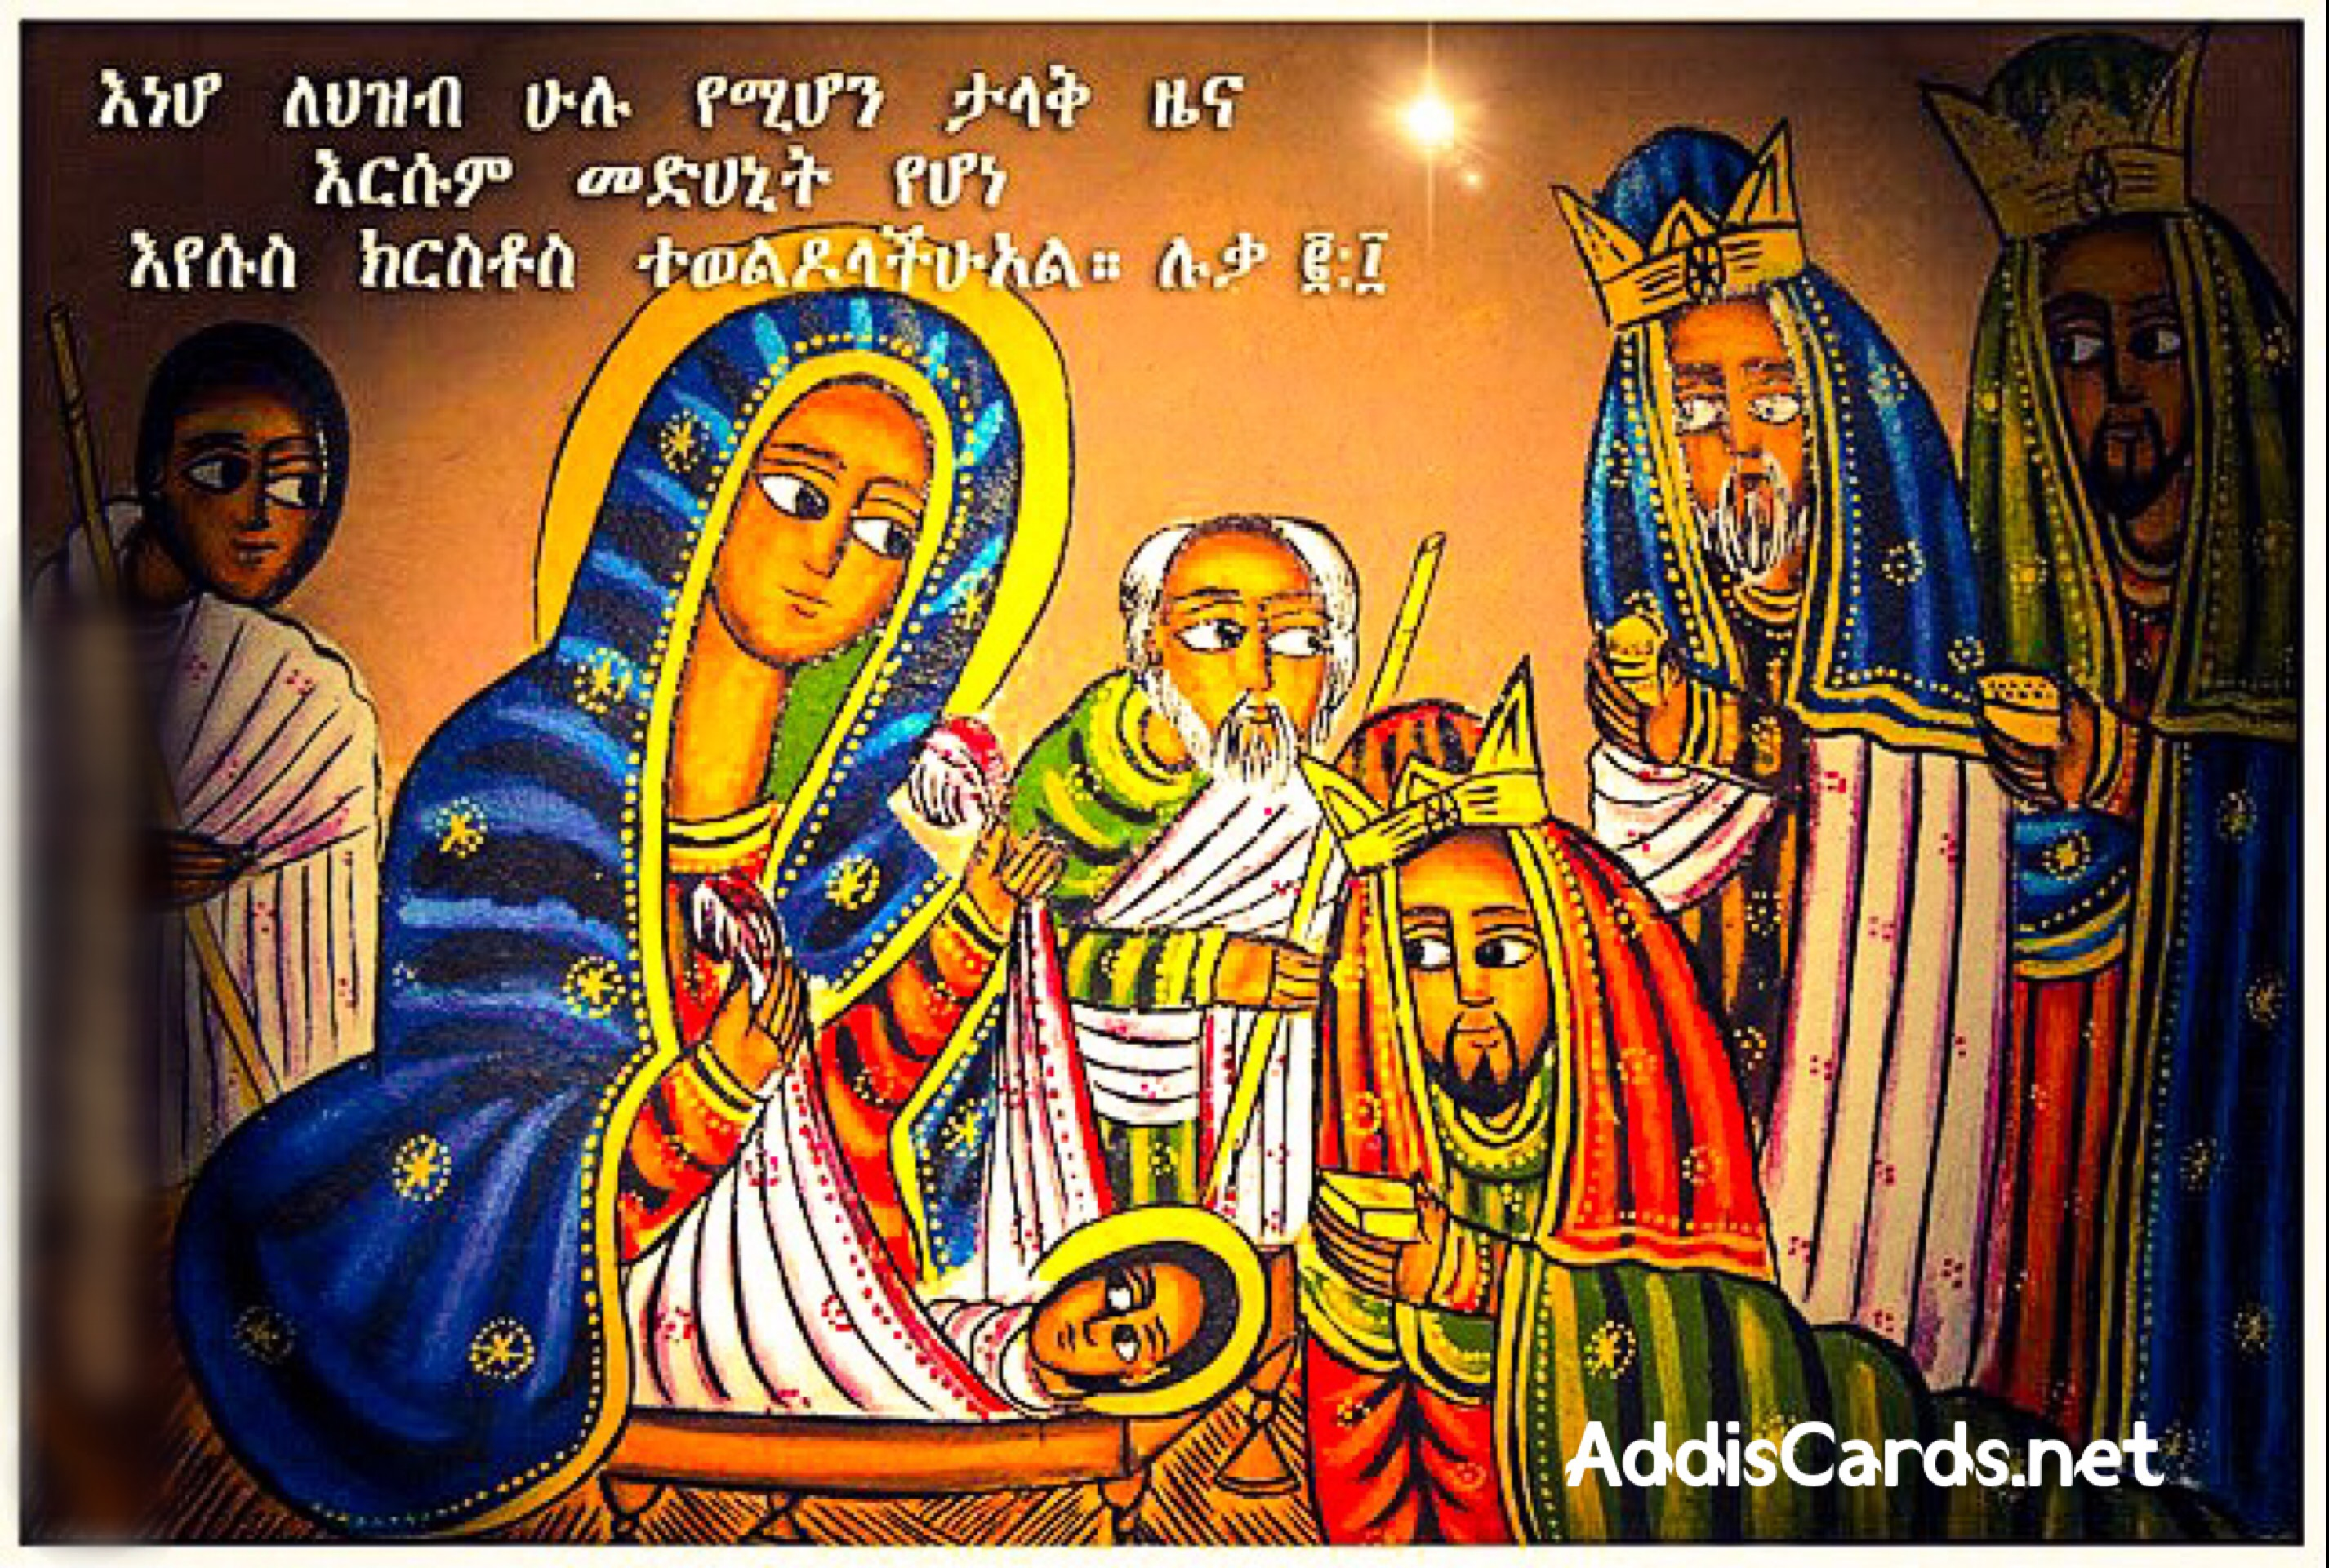 Free Ethiopian Christmas Cards In Amharic And English Addis Video